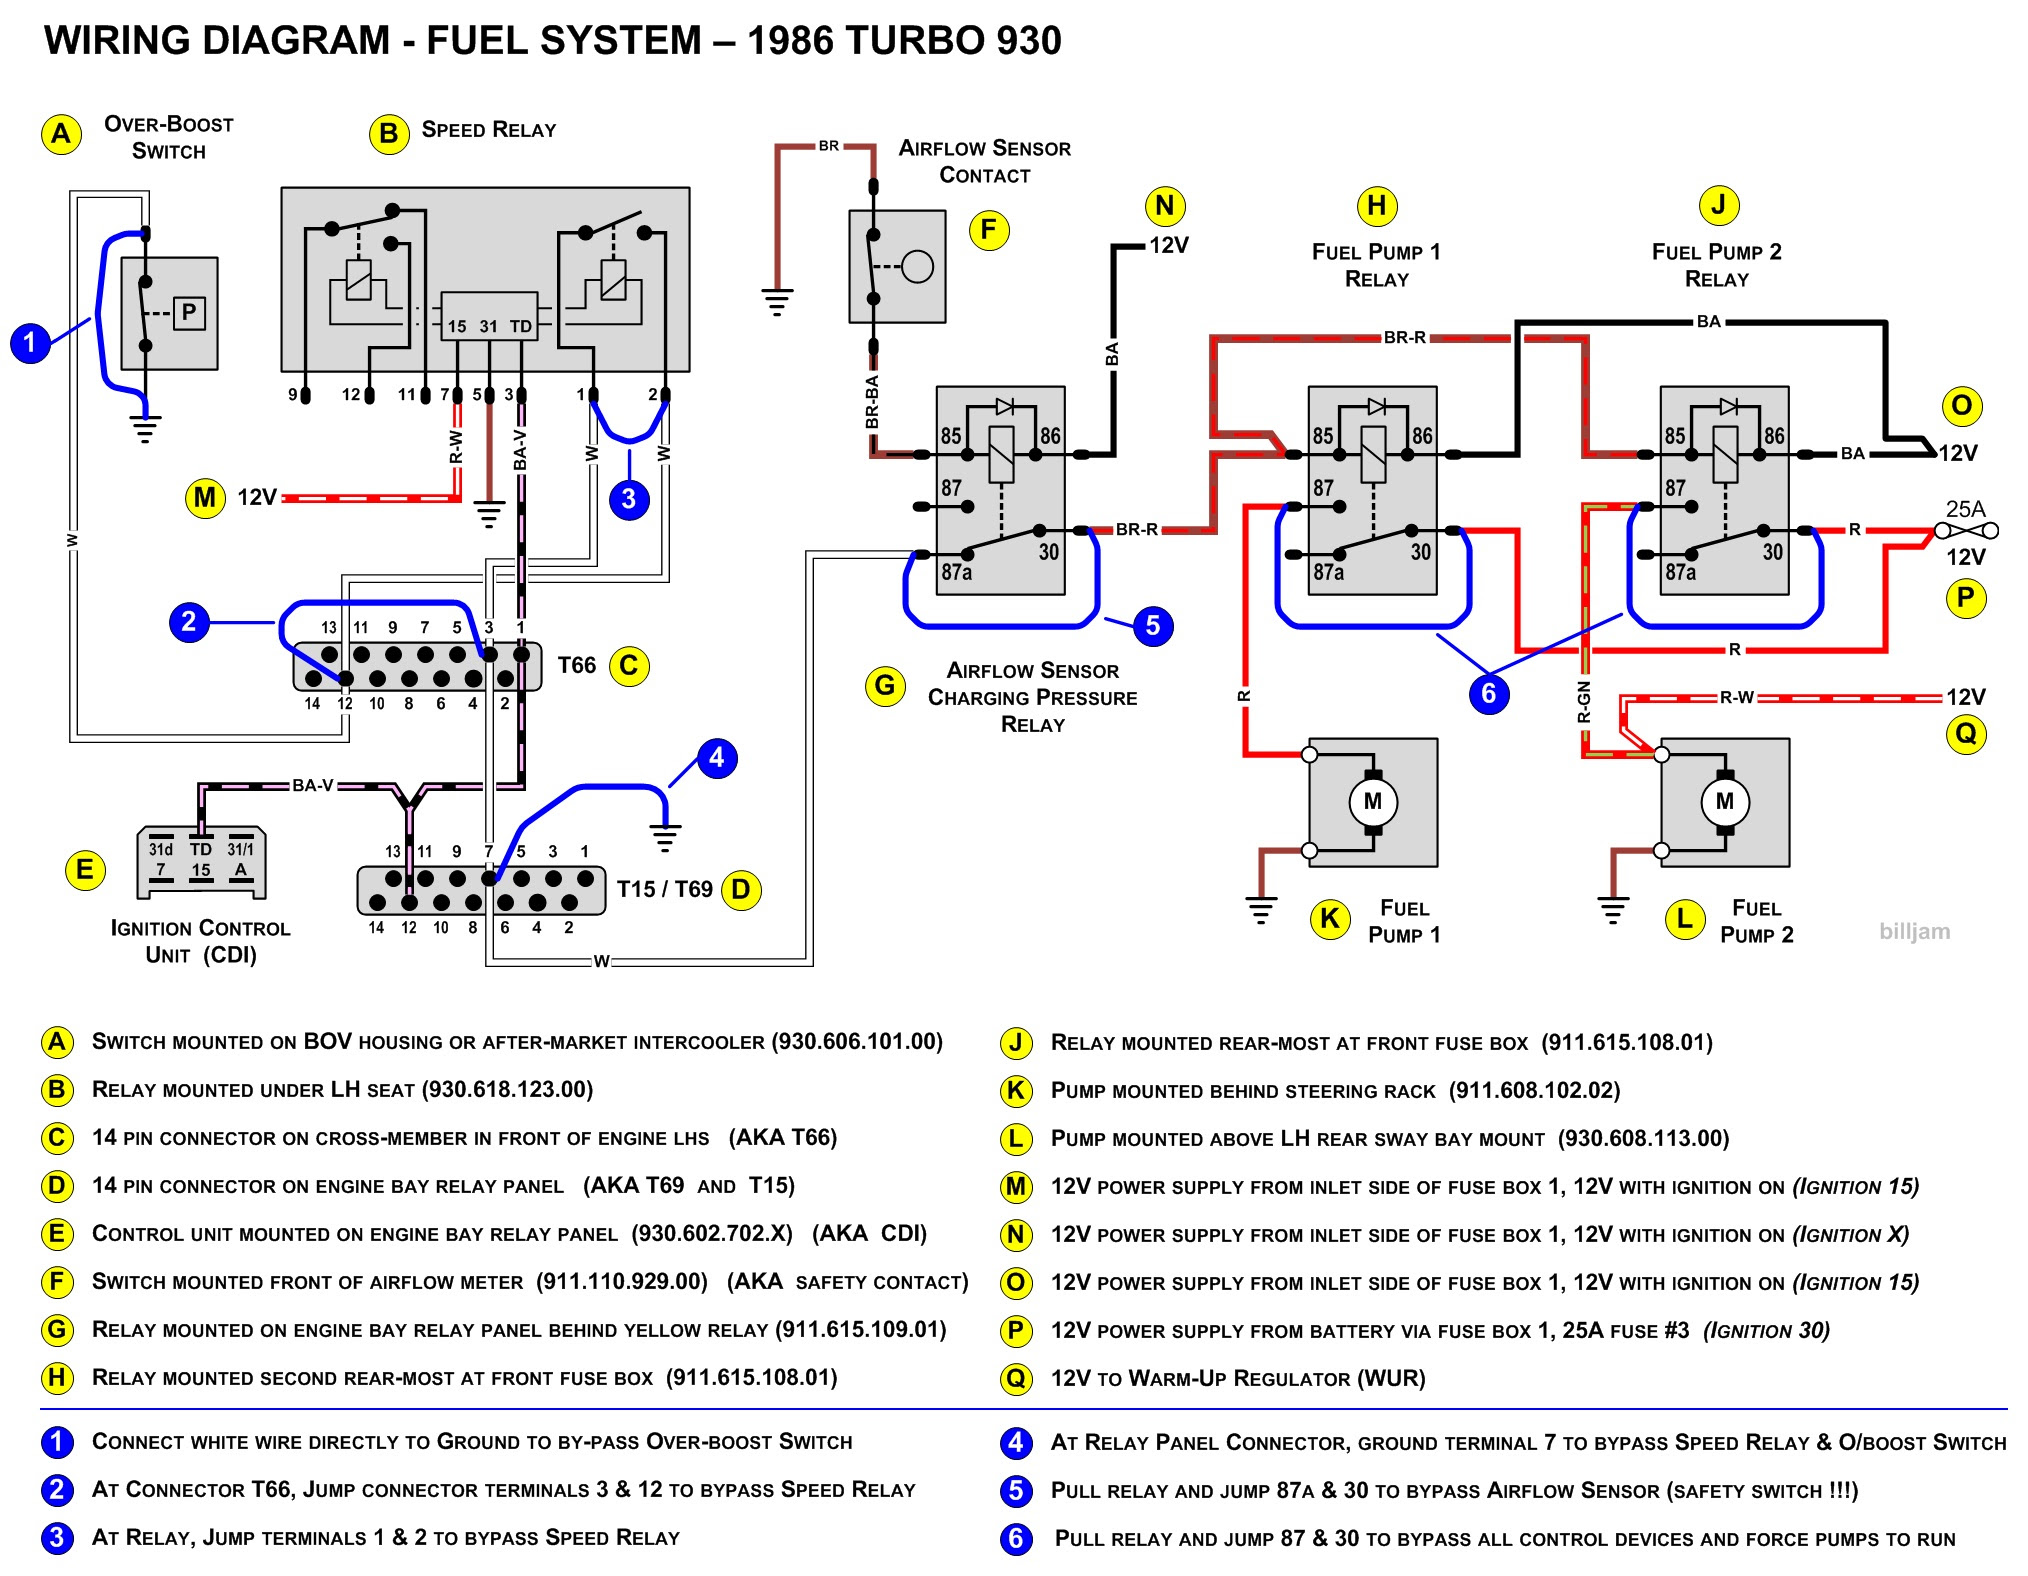 1985 Porsche 911 Fuse Box Diagram Polaris Outlaw Engine Diagram Cts Lsa Nescafe Jeanjaures37 Fr